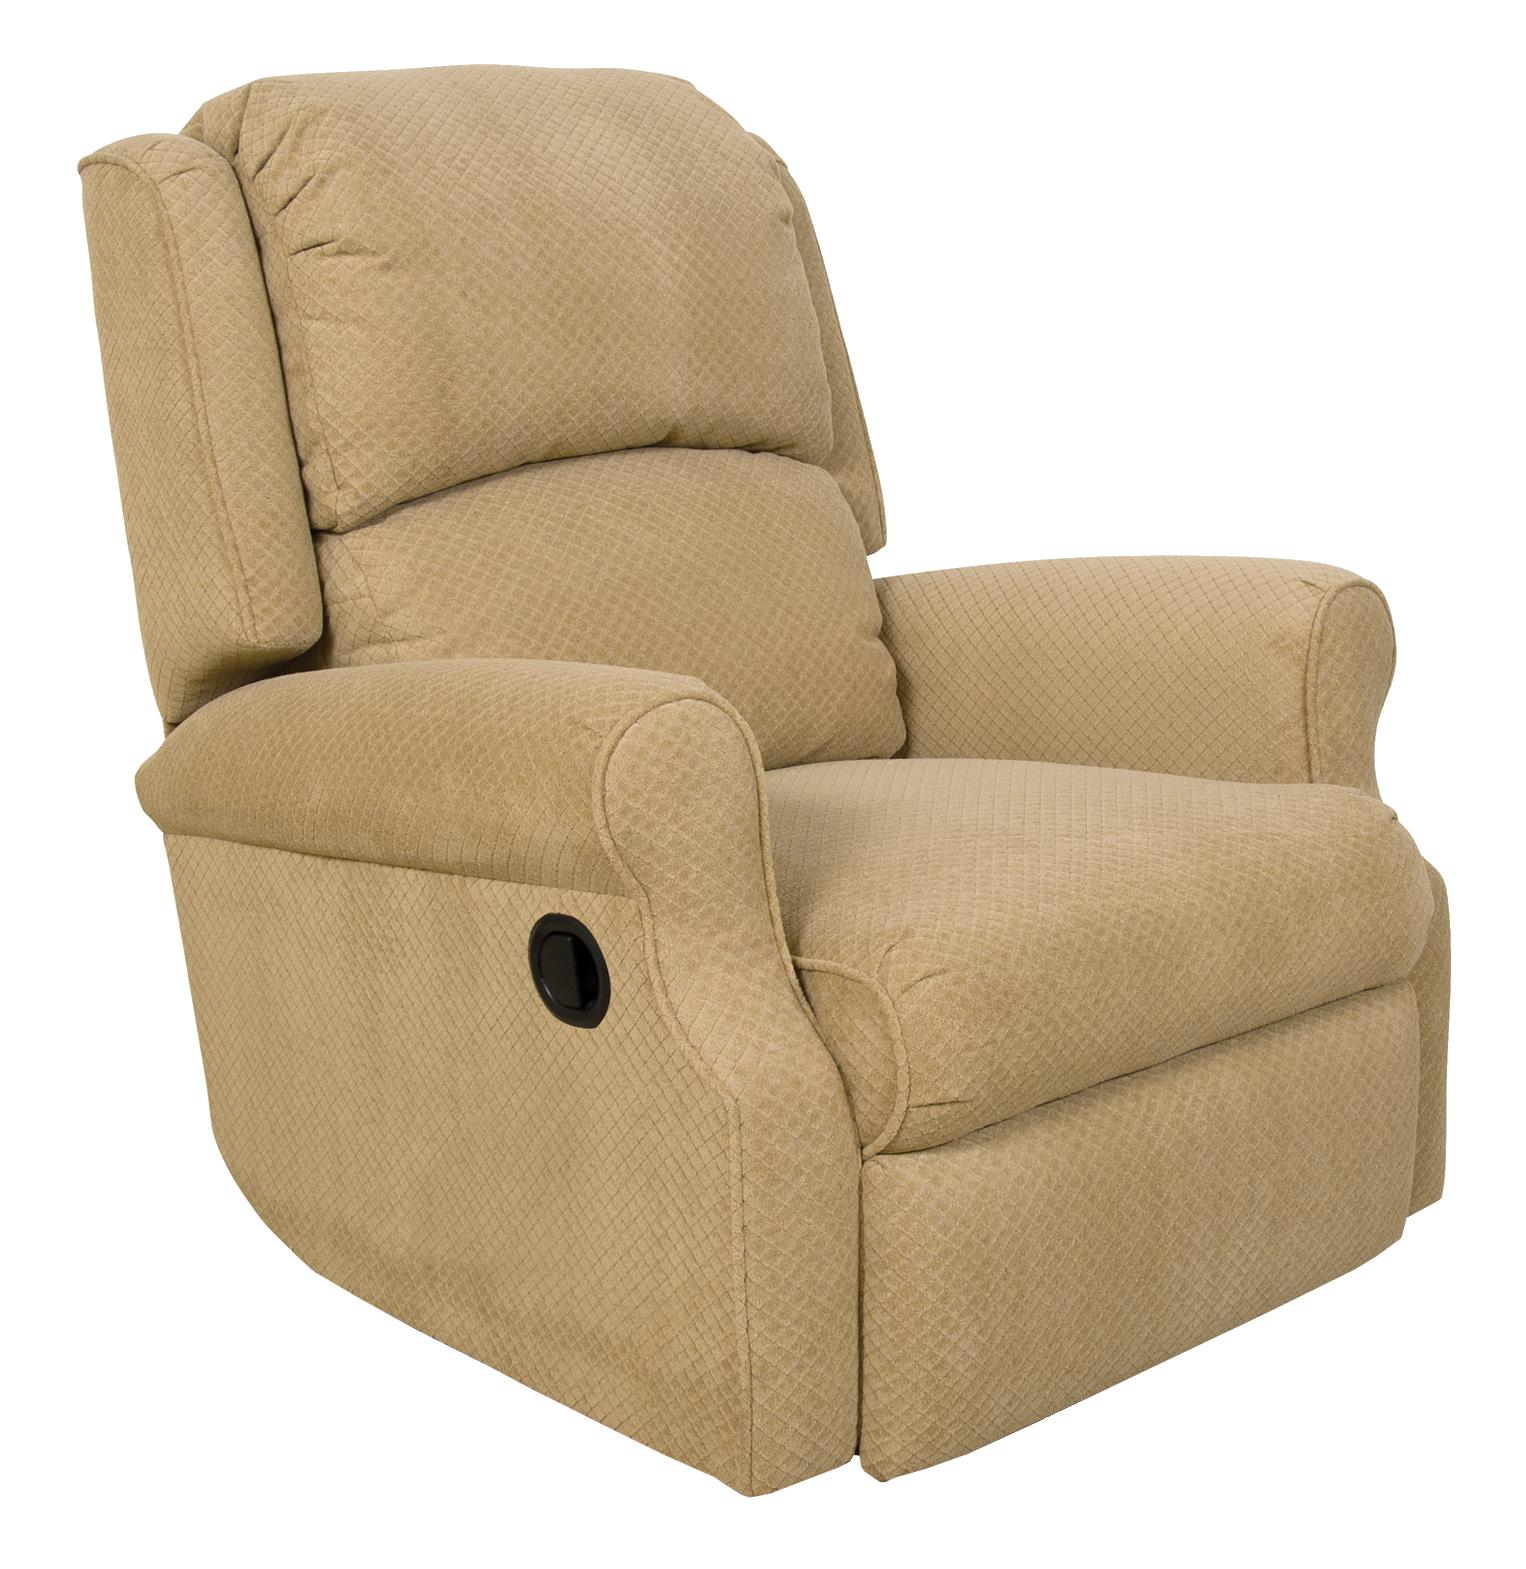 Marybeth Min Prox Recliner with Power by England at Prime Brothers Furniture